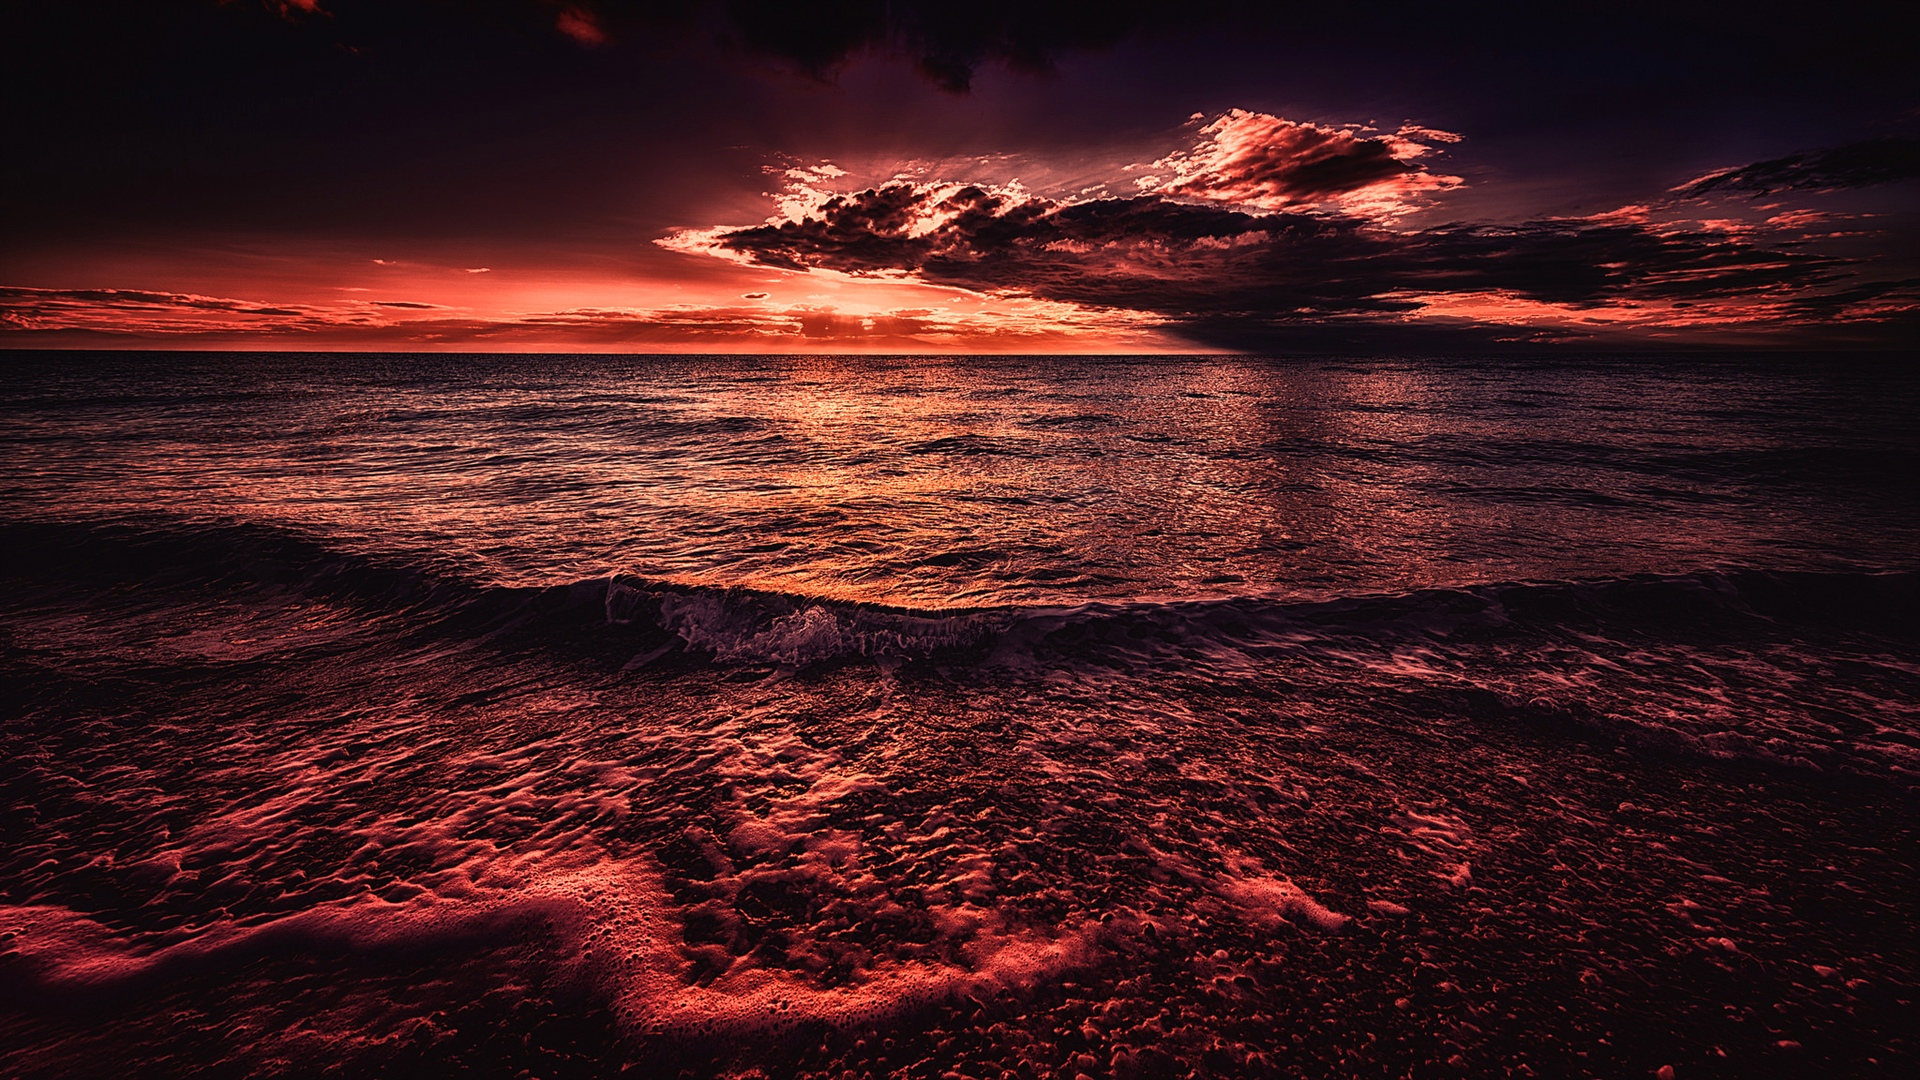 Sea, sunset, evening, red style 1920x1080 wallpaper